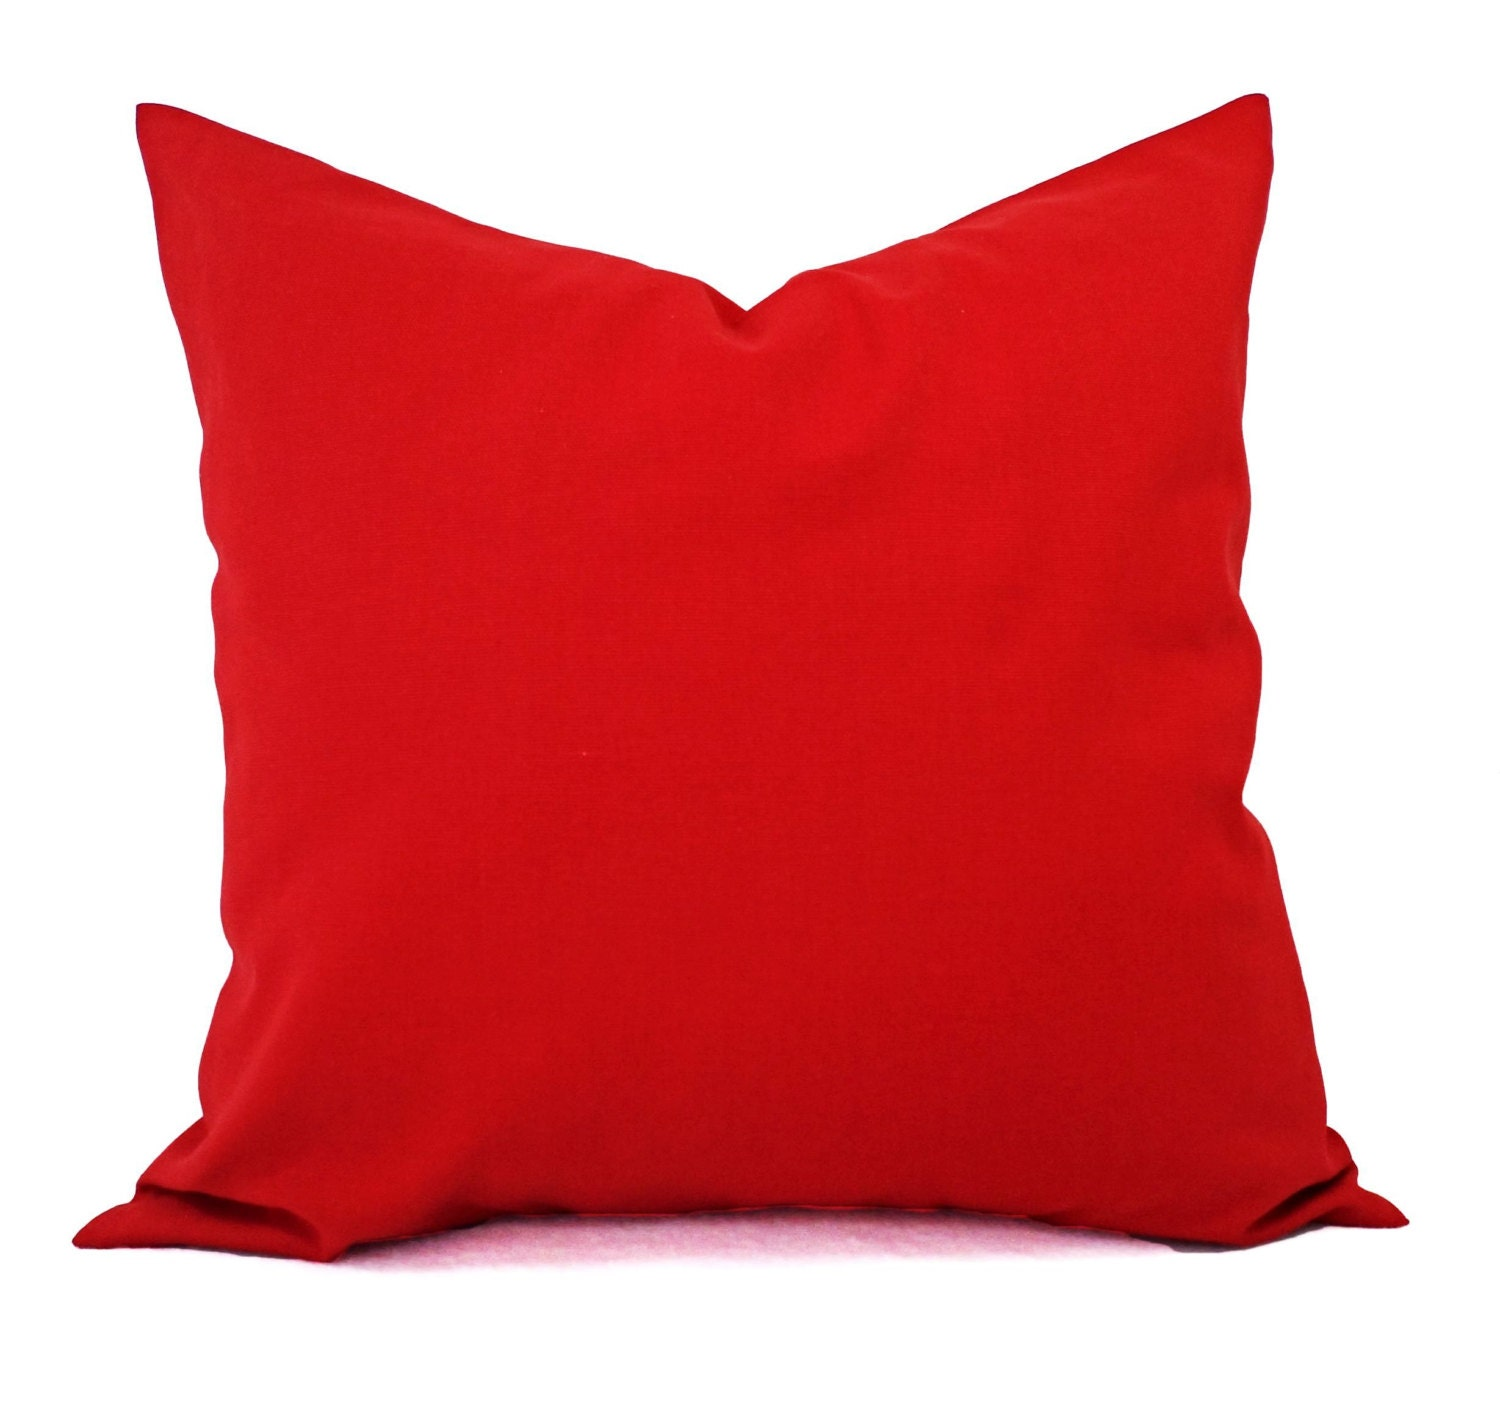 Decorative Pillows For Red Couch : Solid Red Pillow Covers Red Couch Pillow Covers Two Throw